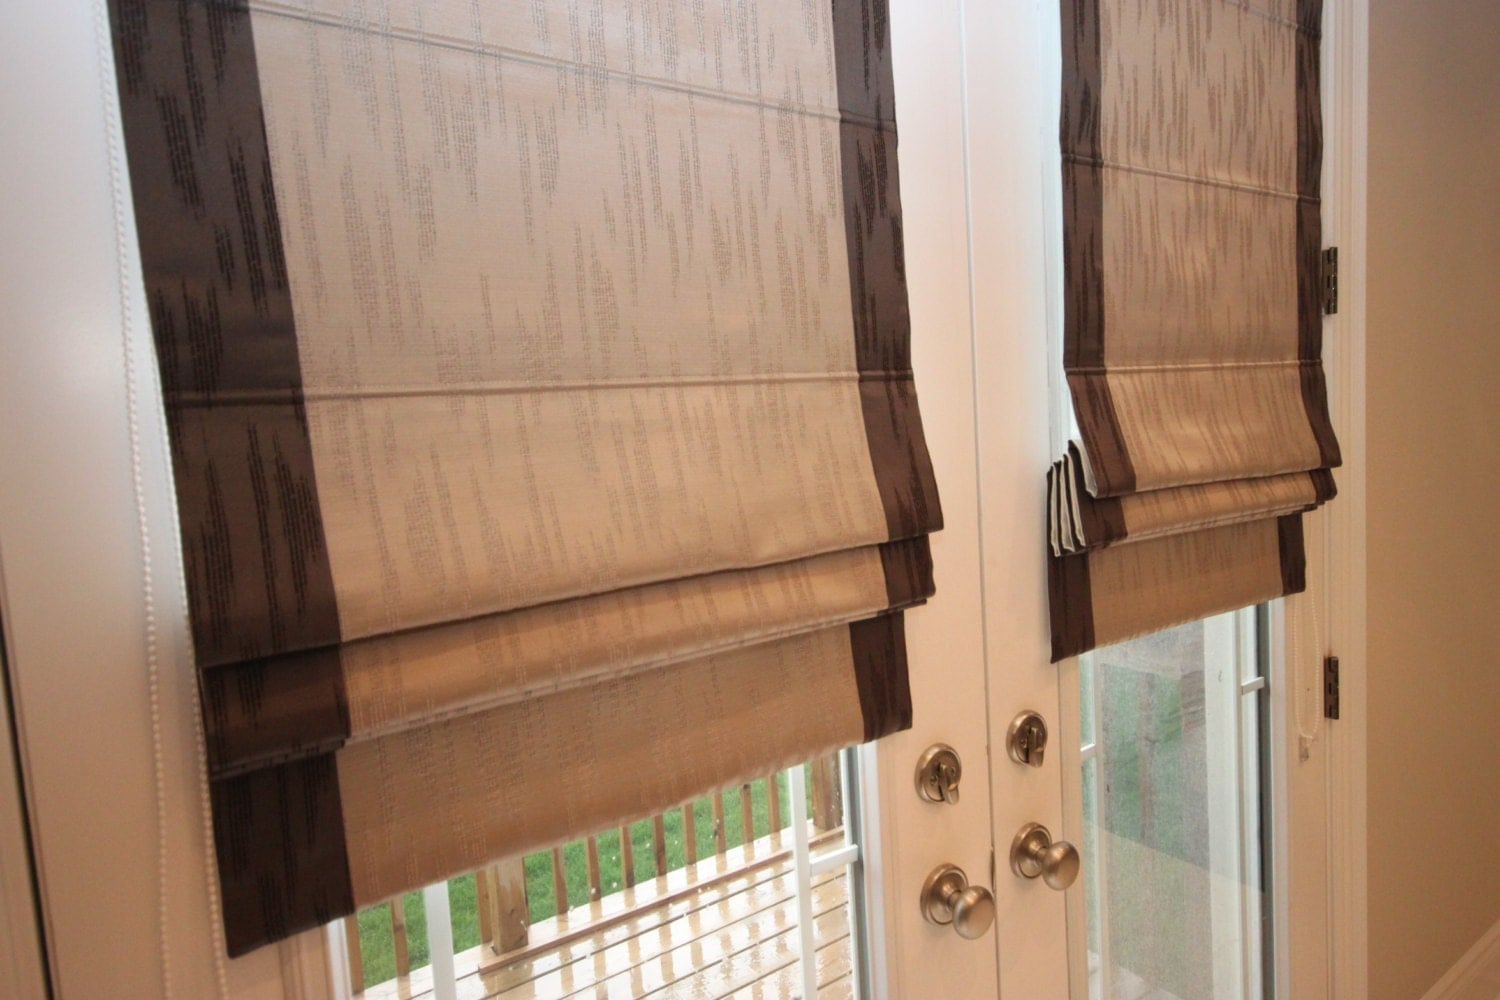 Flat Roman Shade With Valance And Border Chain Mechanism